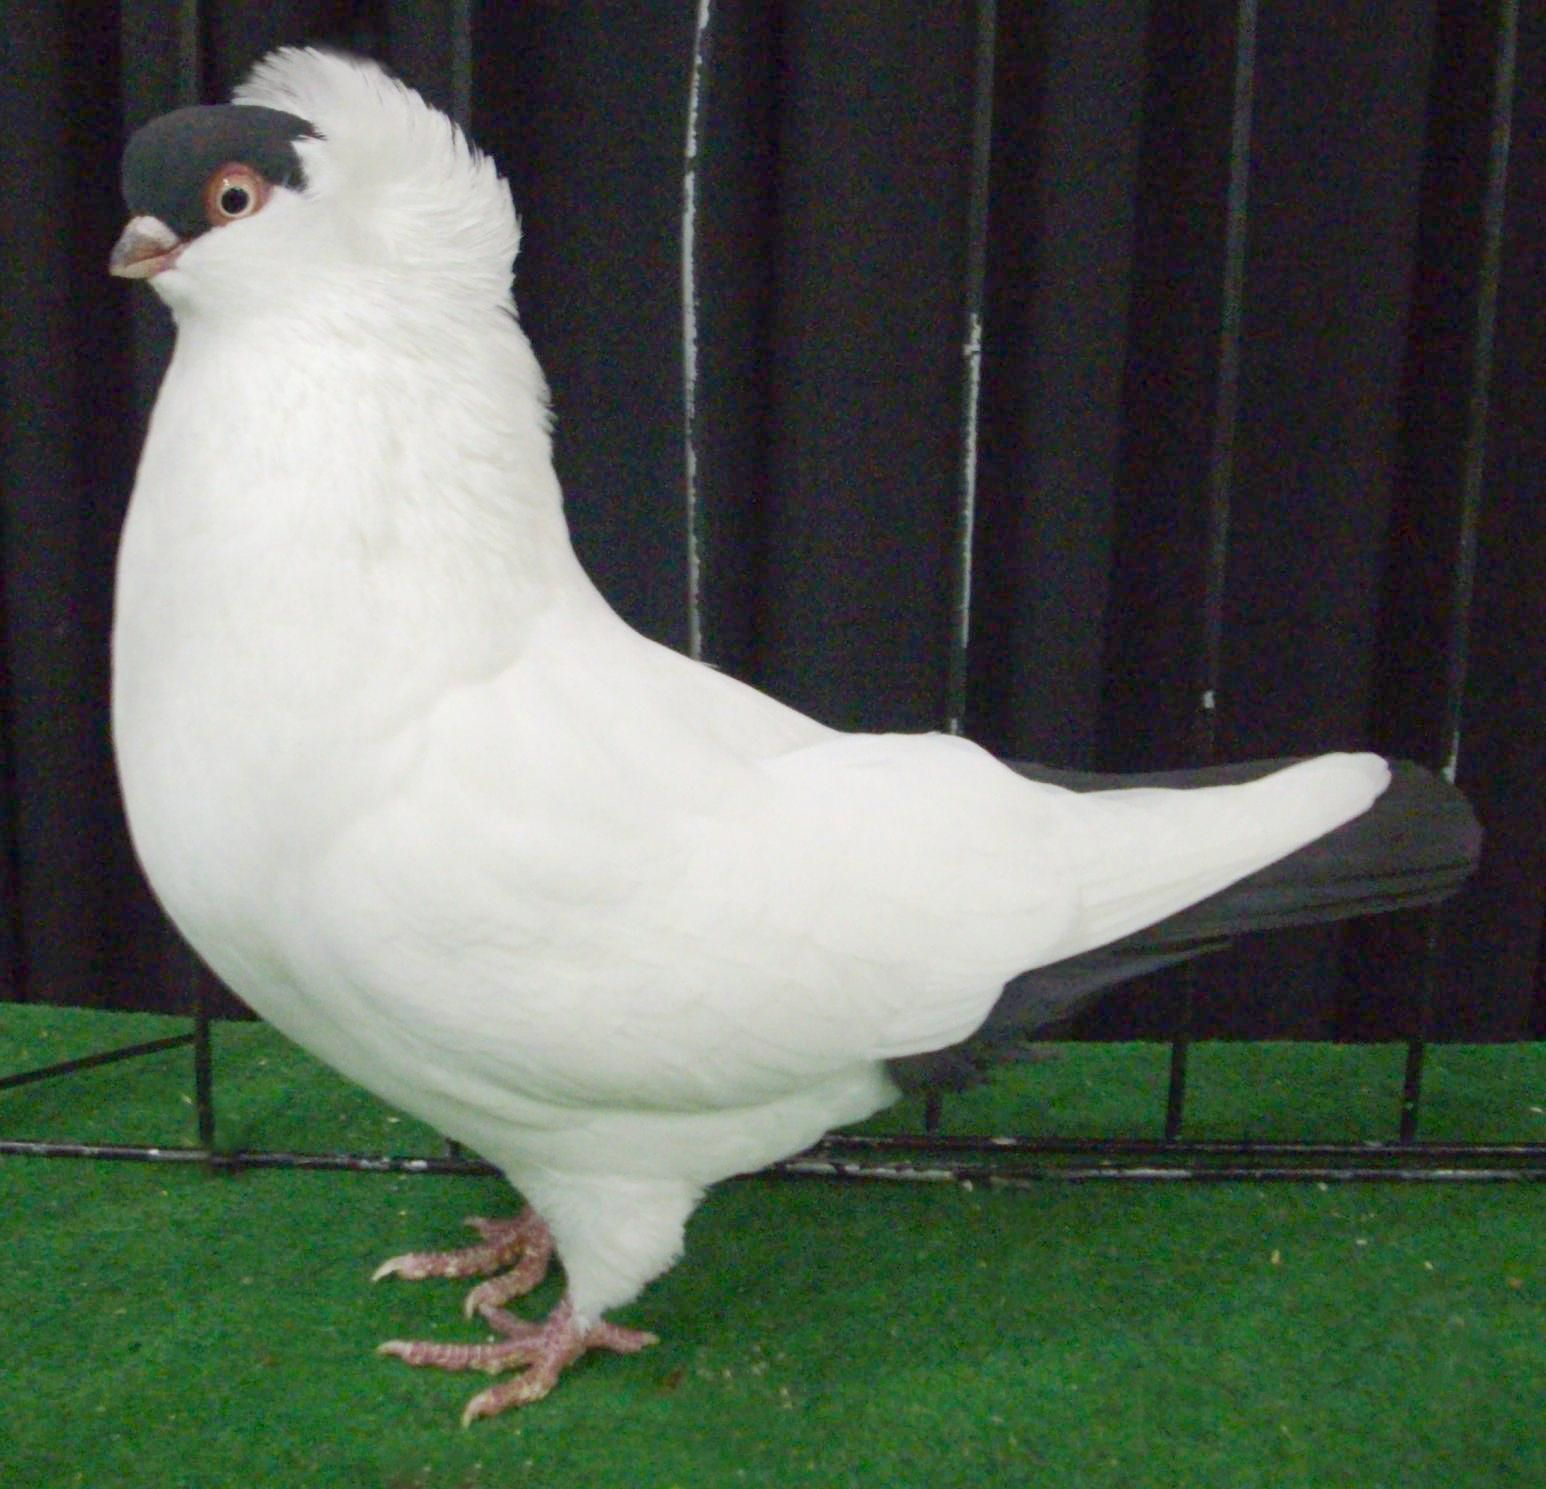 Helmet Pigeon All World Doves And Pigeons Pigeon Pictures Pigeon Birds